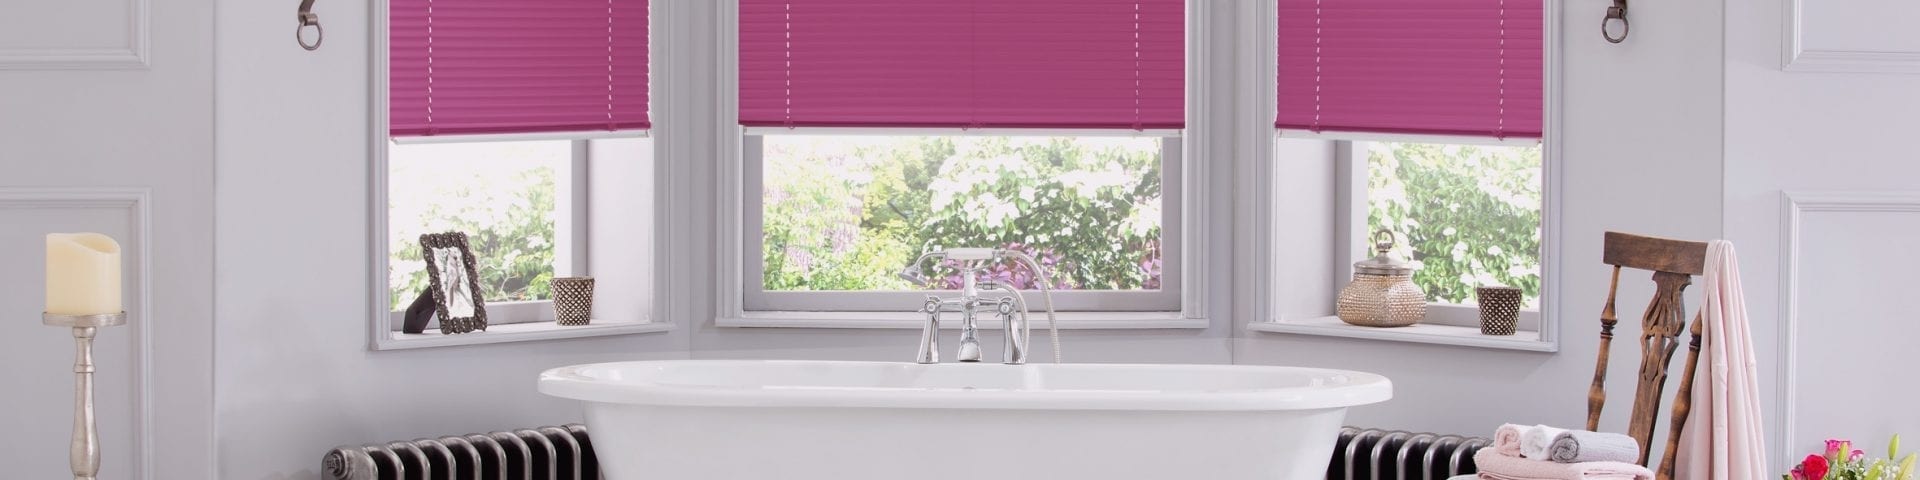 Venetian blinds from Insignia Blinds